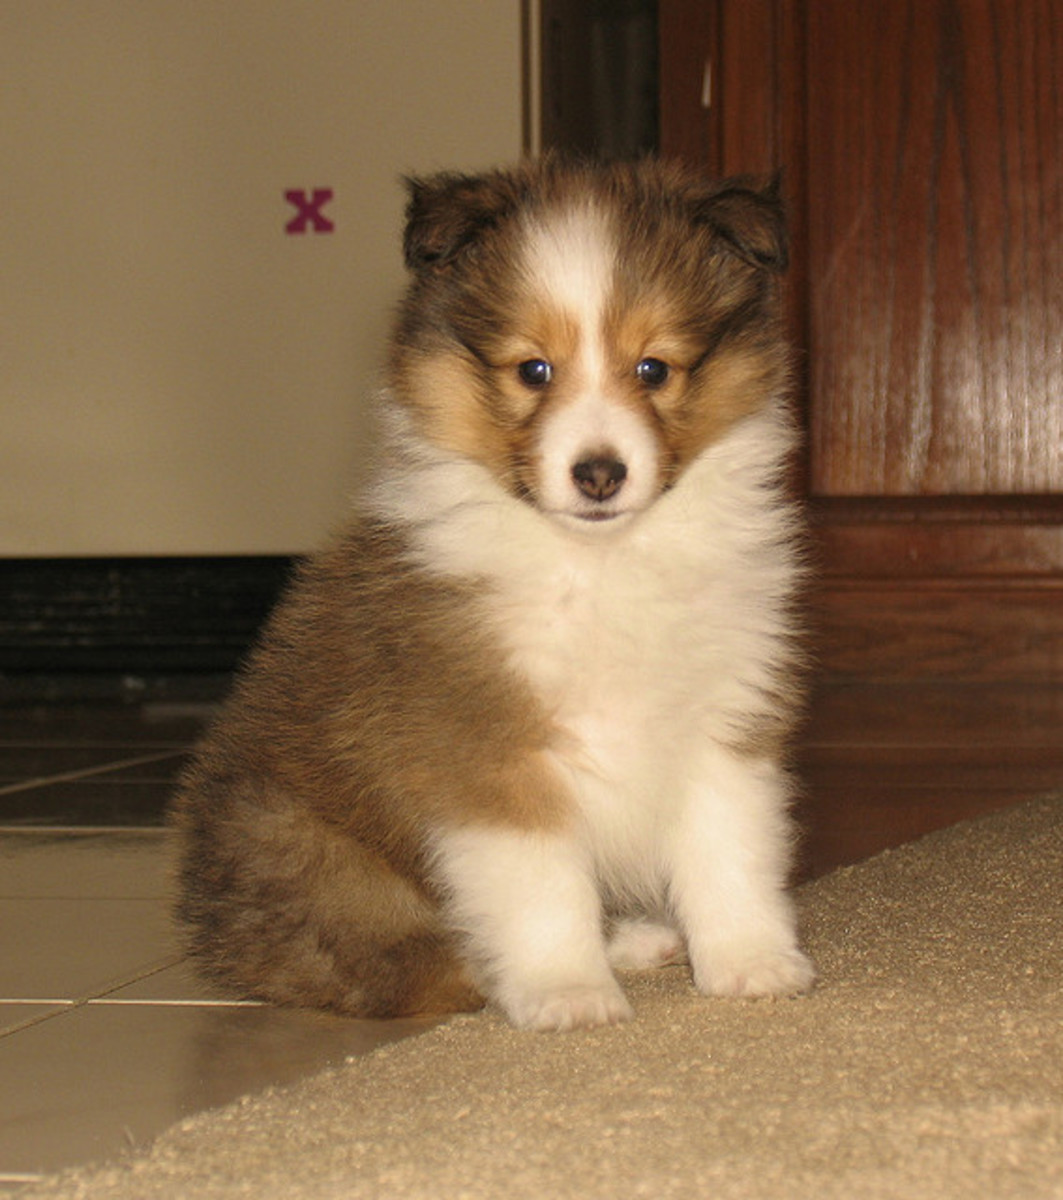 A Sheltie puppy.